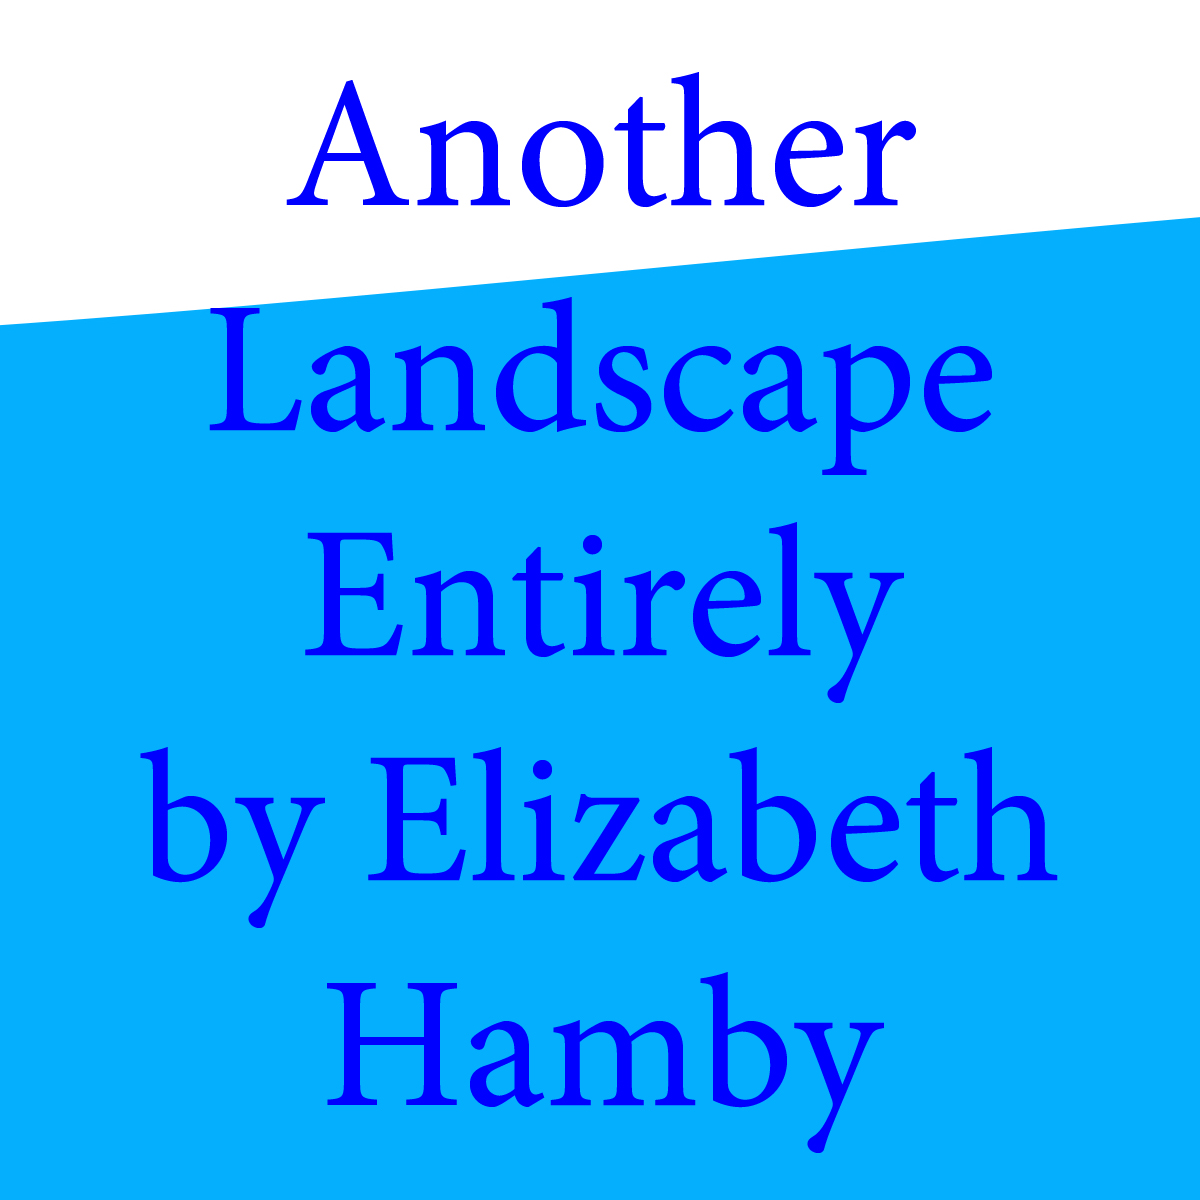 another landscape entirely by elizabeth hamby.jpg